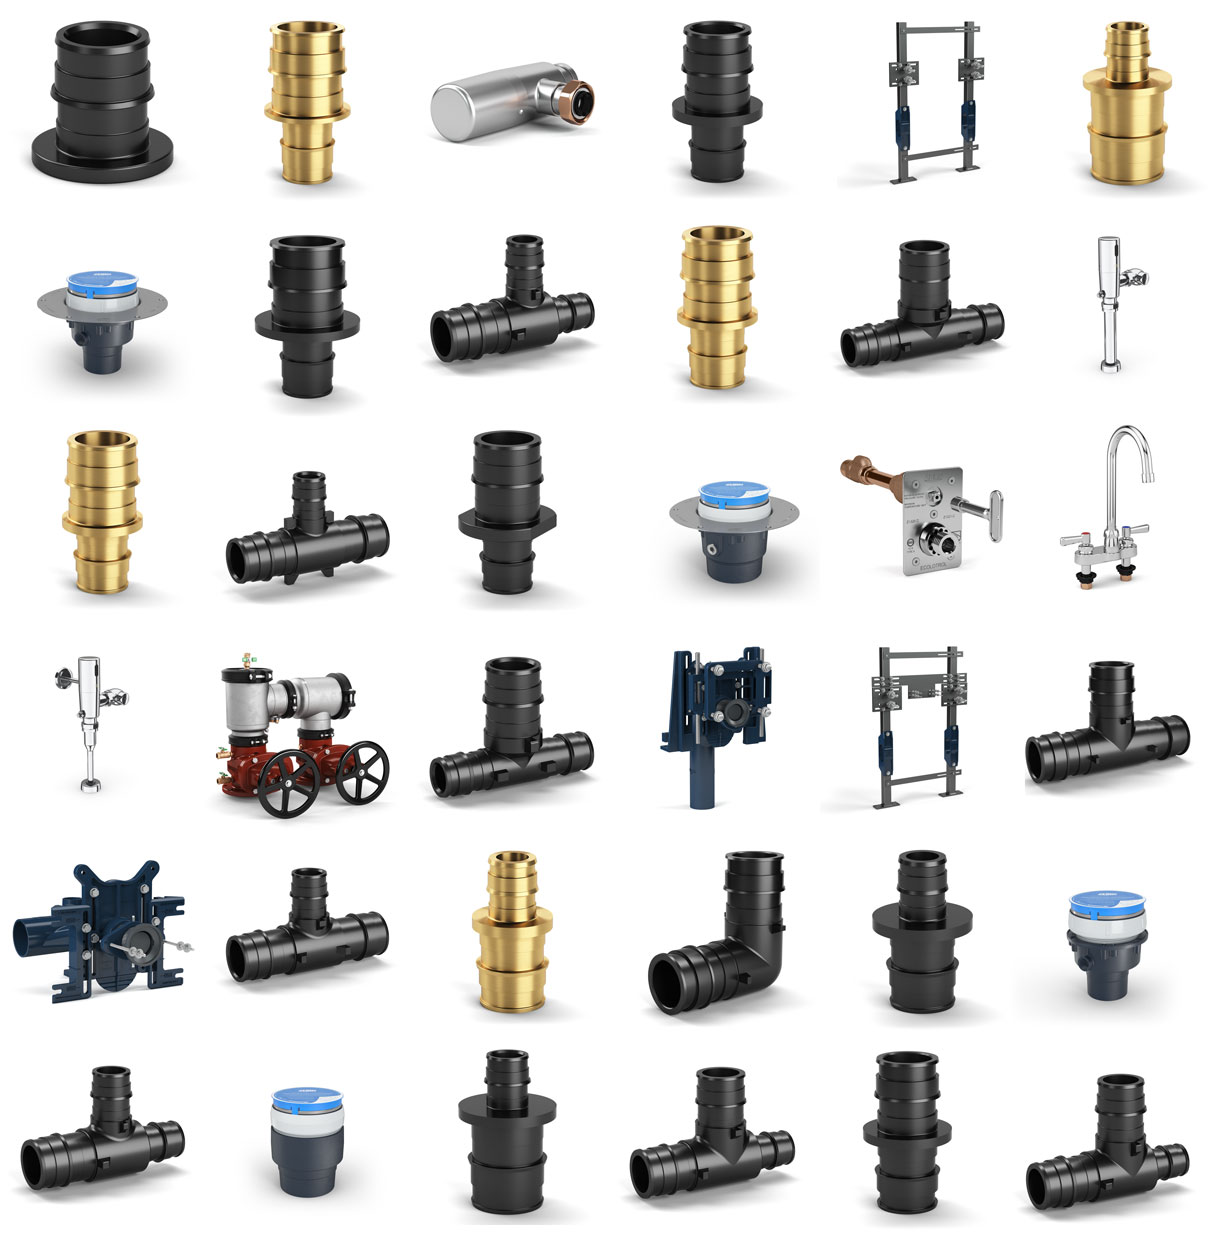 Grid of 36 different water solution parts and tools from Zurn product catalog